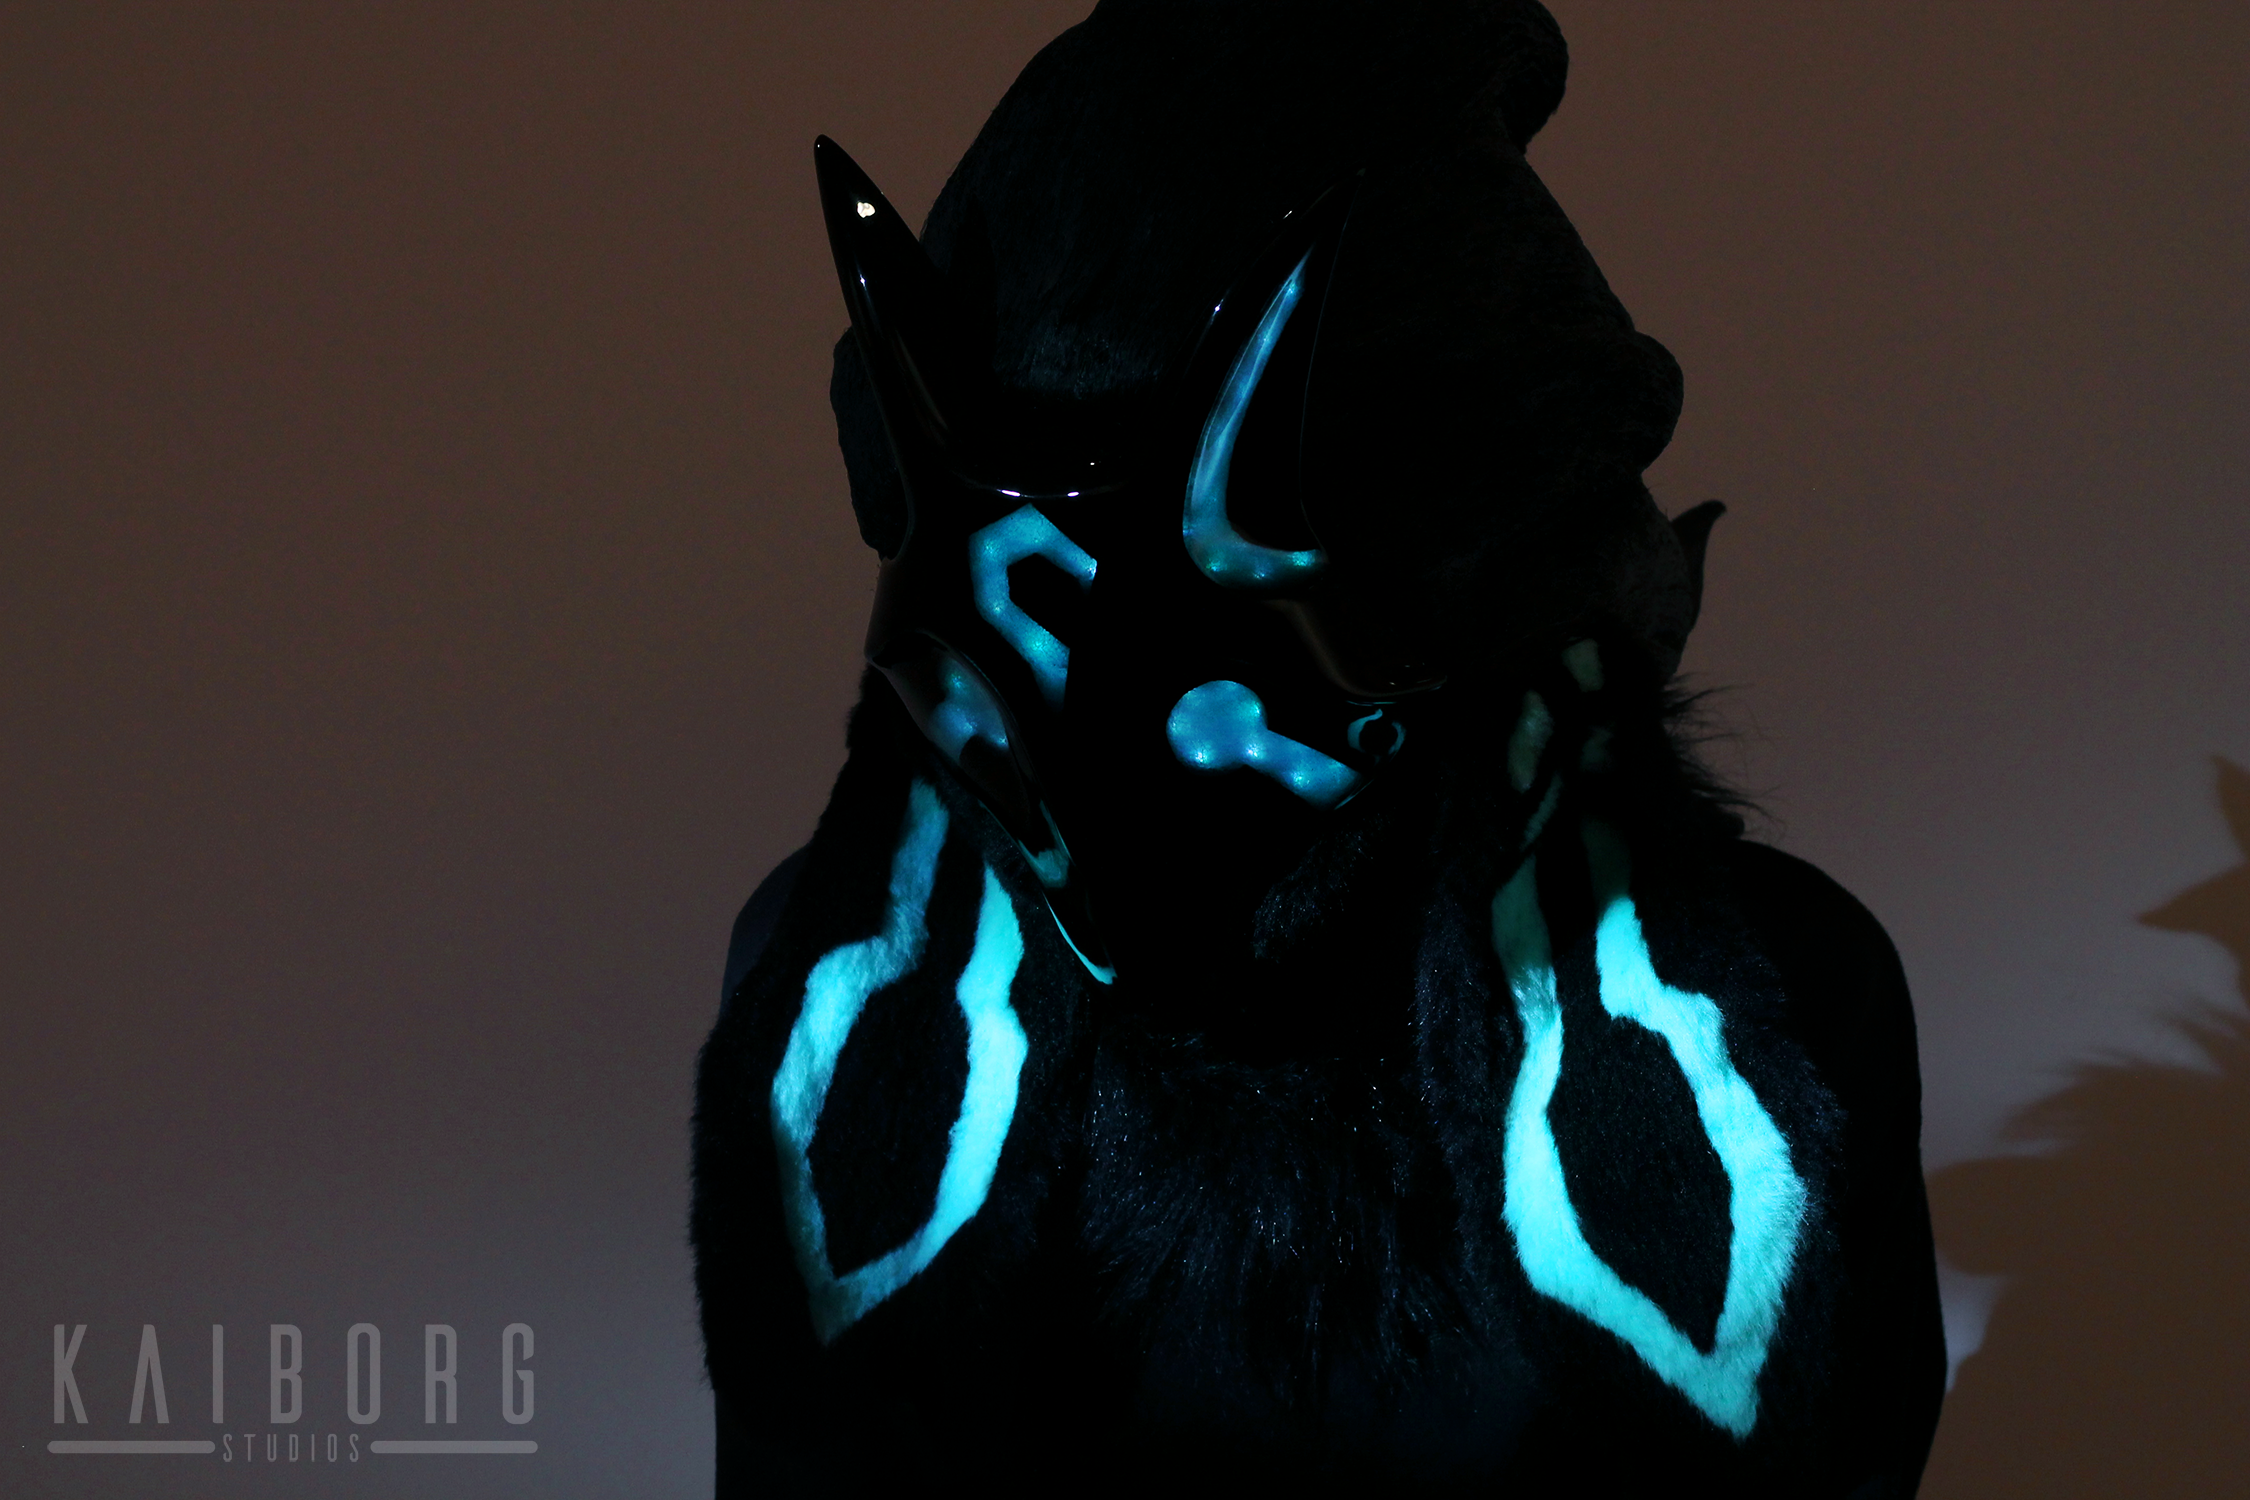 Project Kindred League Of Legends Kaiborg Studios